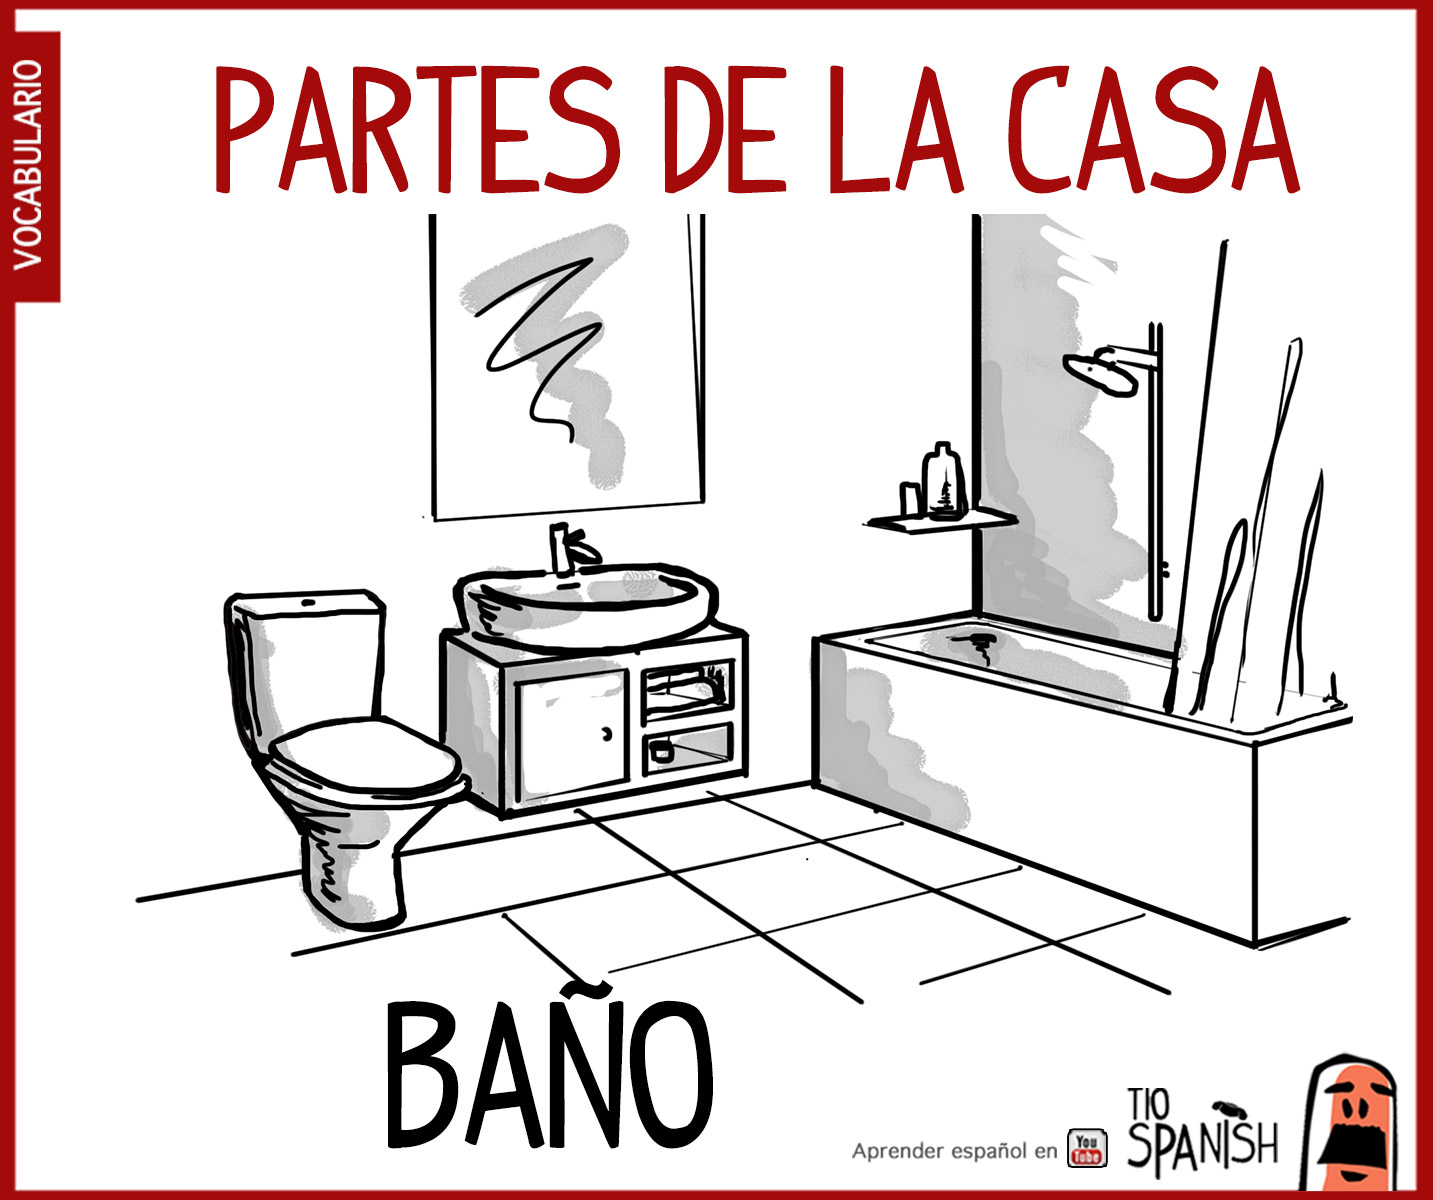 Baño Para Colorear Bano Vocabulario Espanol Intermedio Partes Casa Tio Spanish